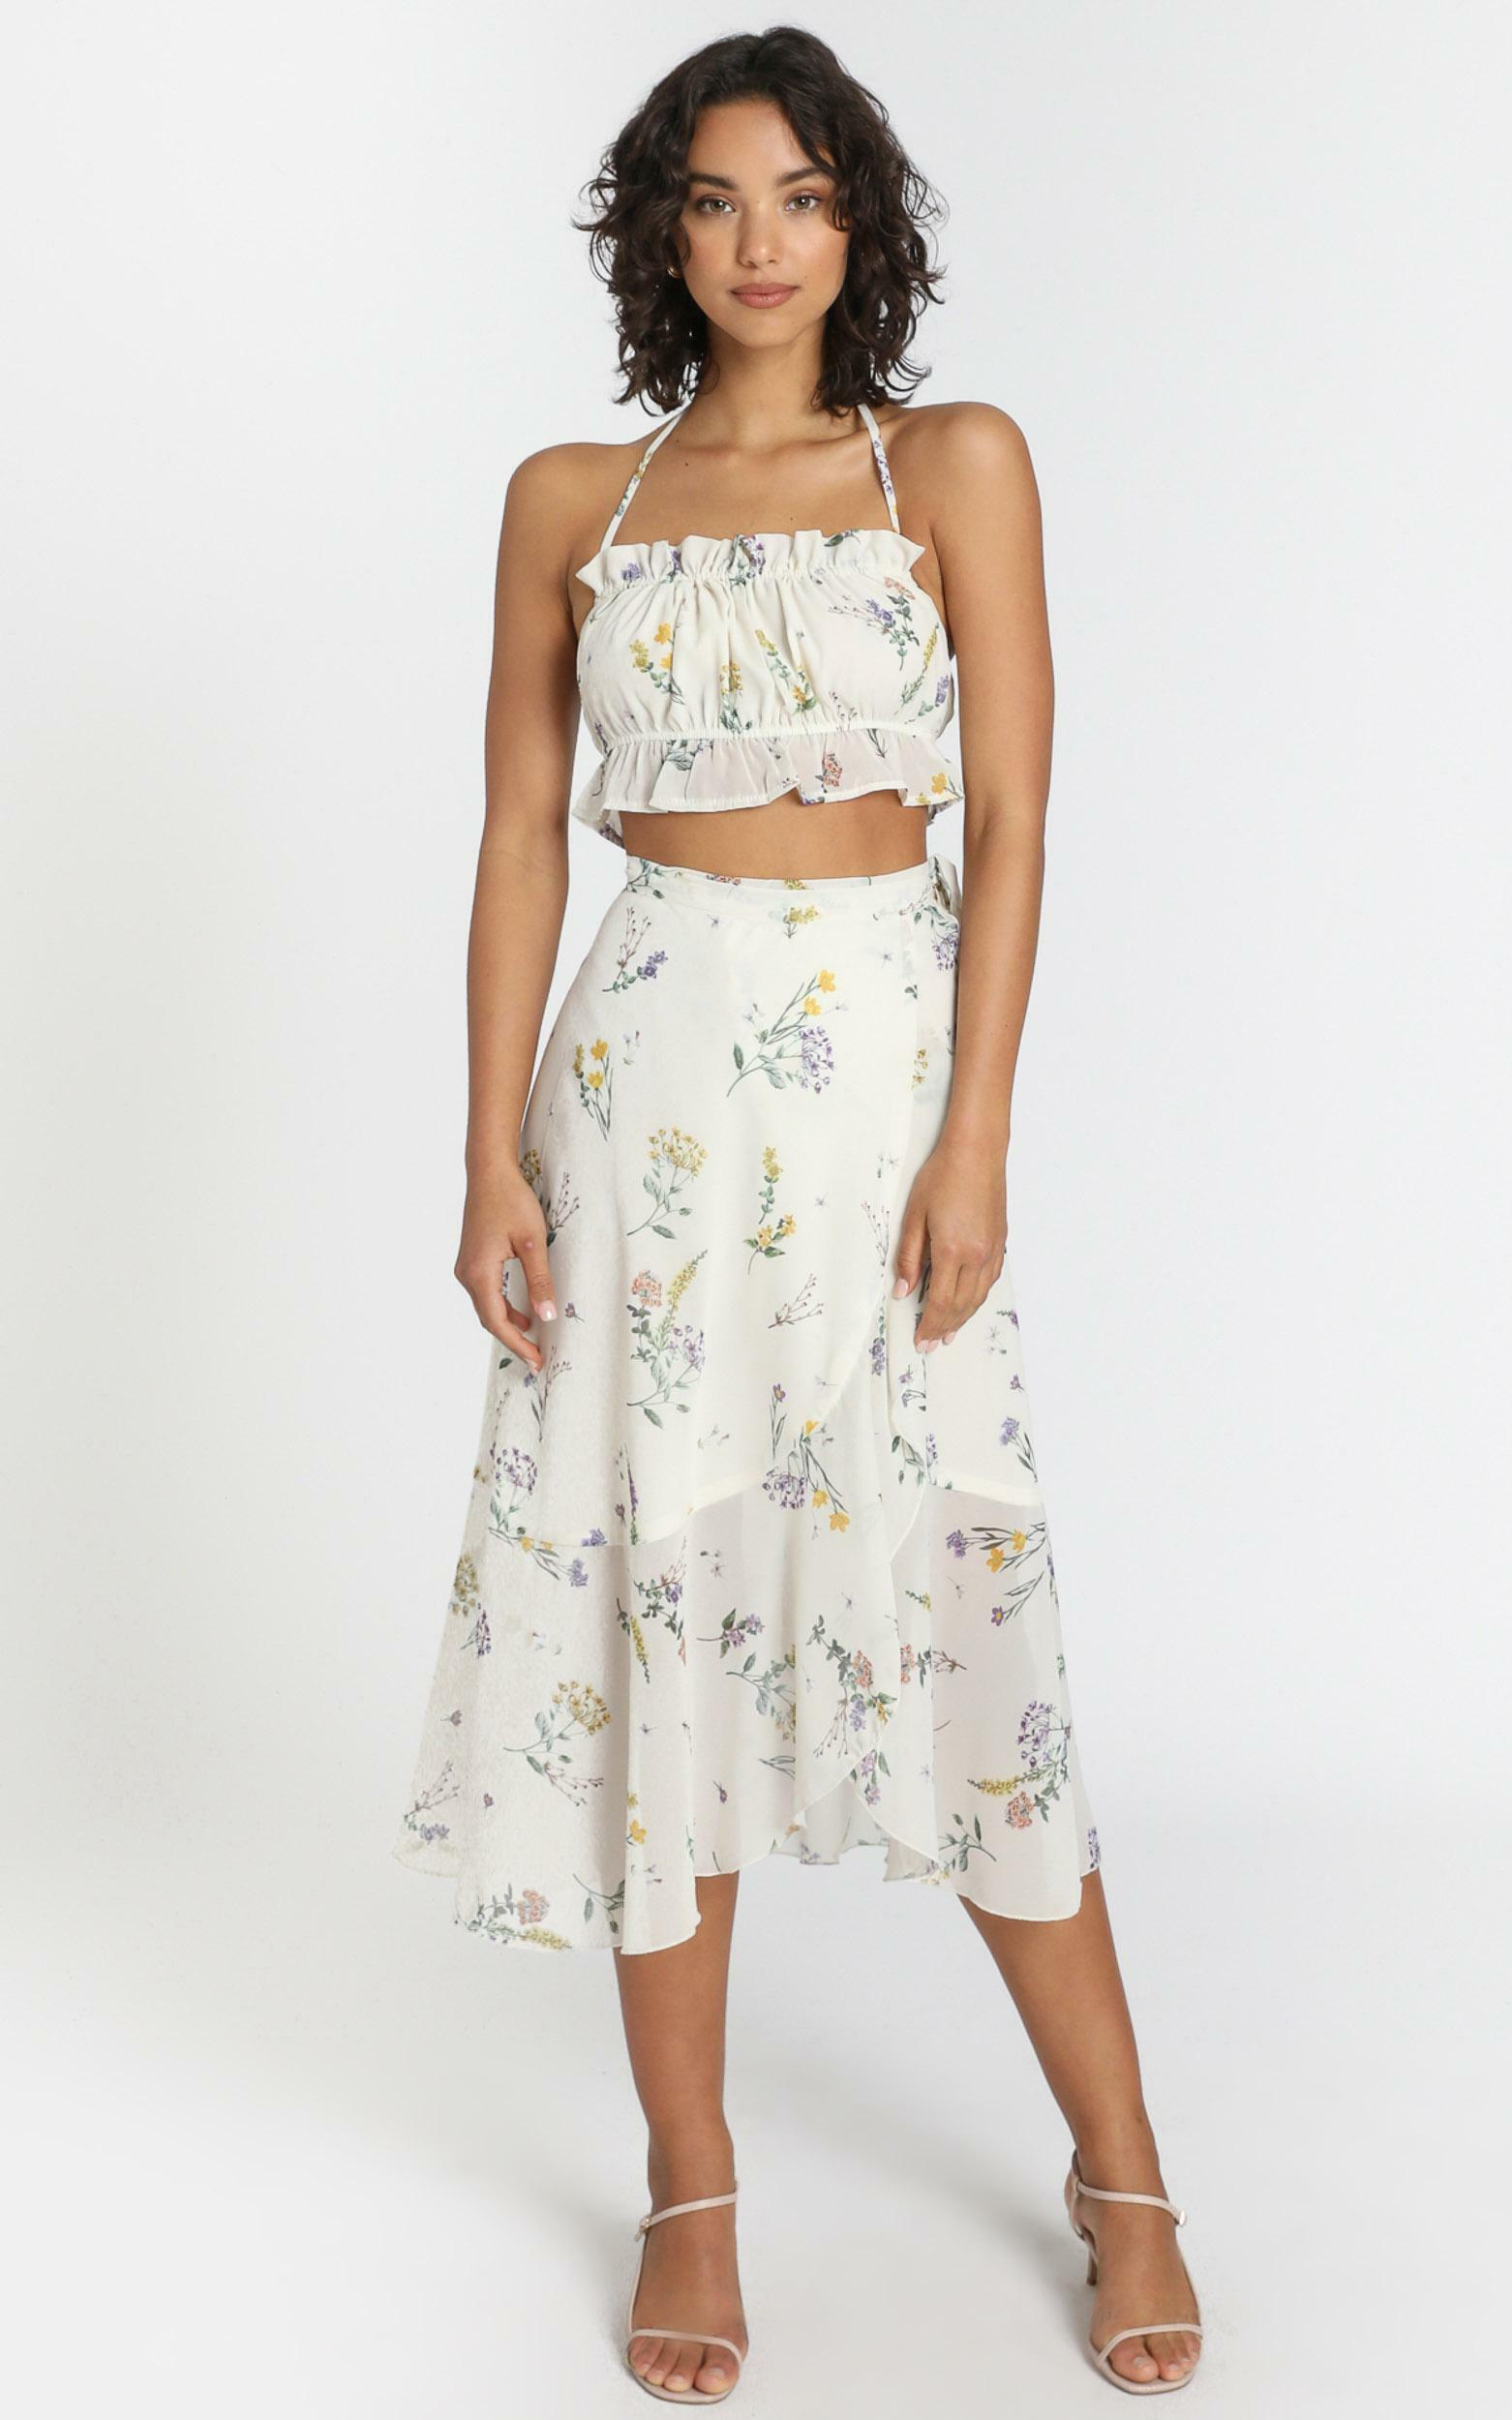 Add To The Mix Skirt in Botanical Floral - 04, CRE1, hi-res image number null